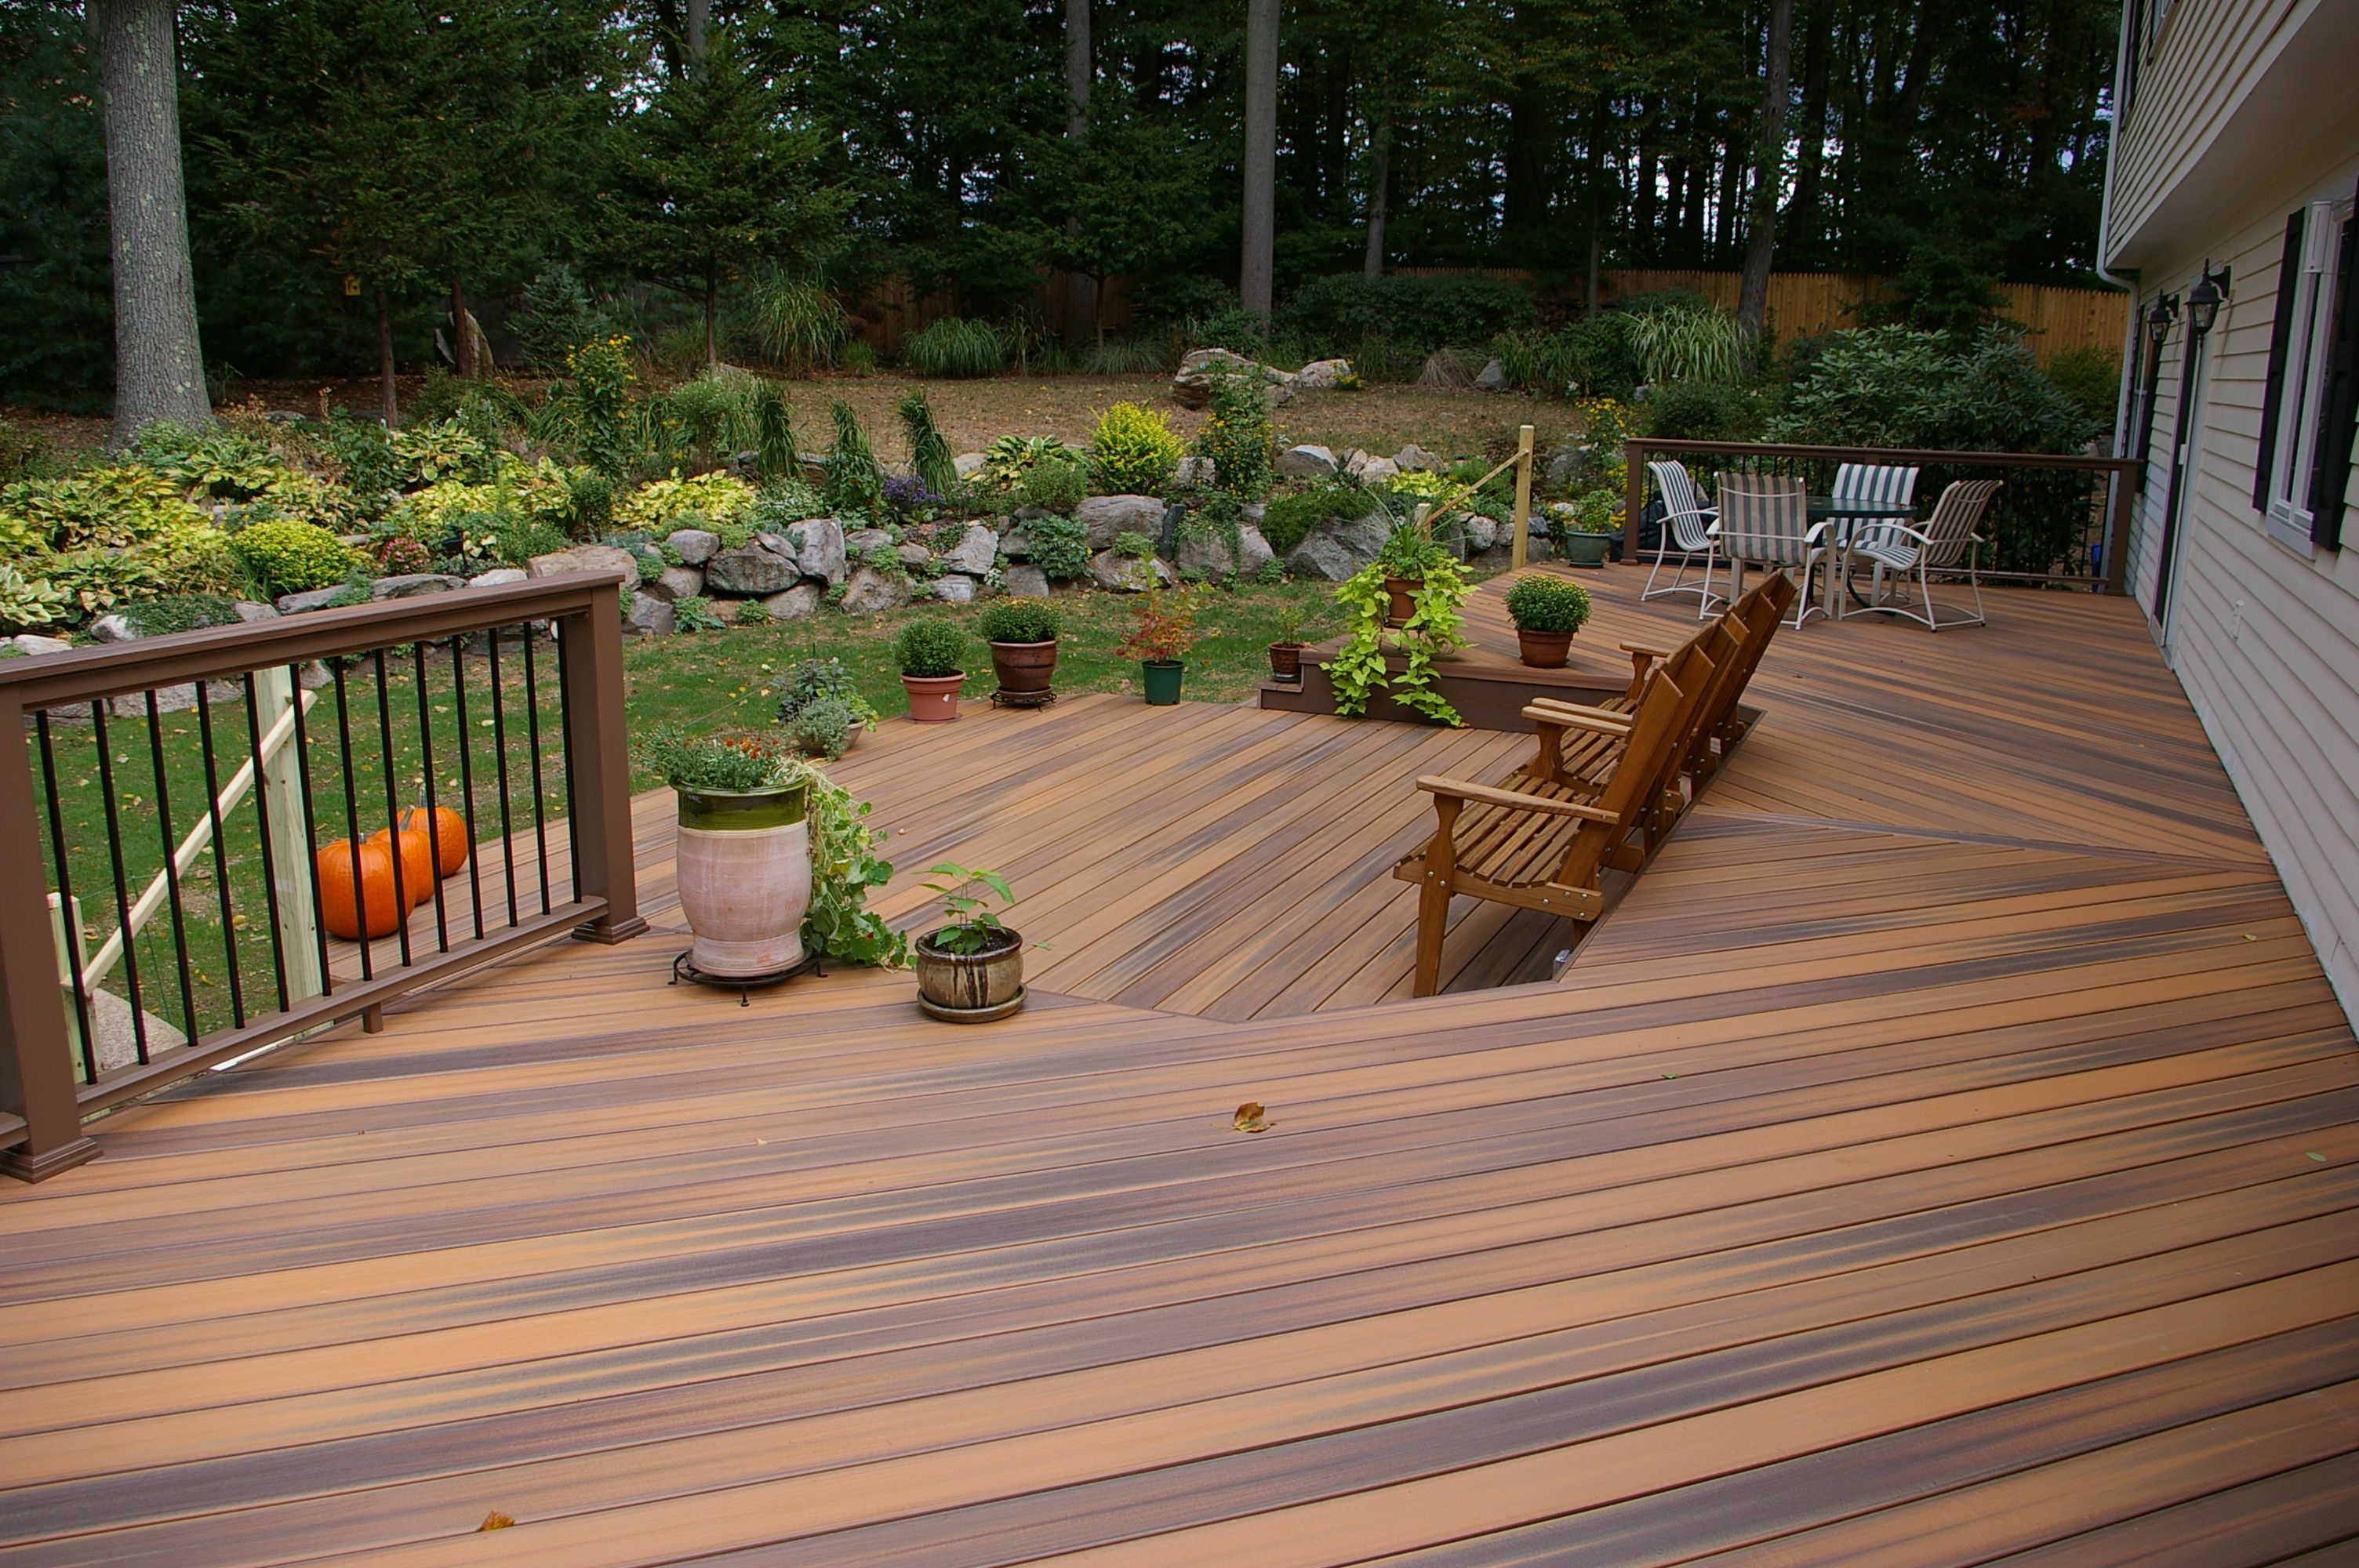 Great new pvc decking by fiberon azek and timber tech for Outdoor decking material